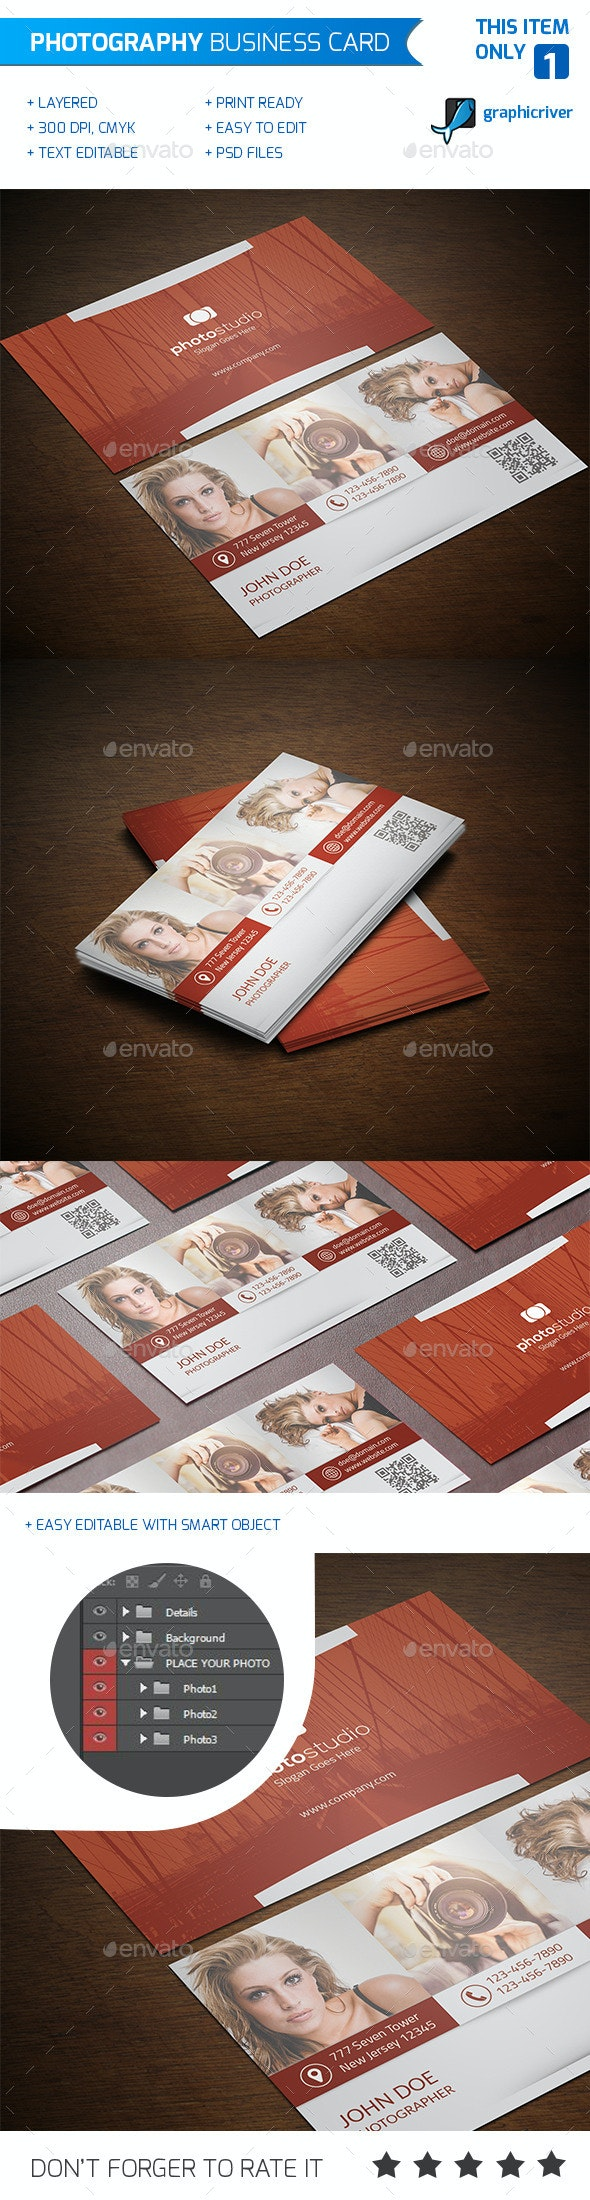 Photography Business Card - Industry Specific Business Cards